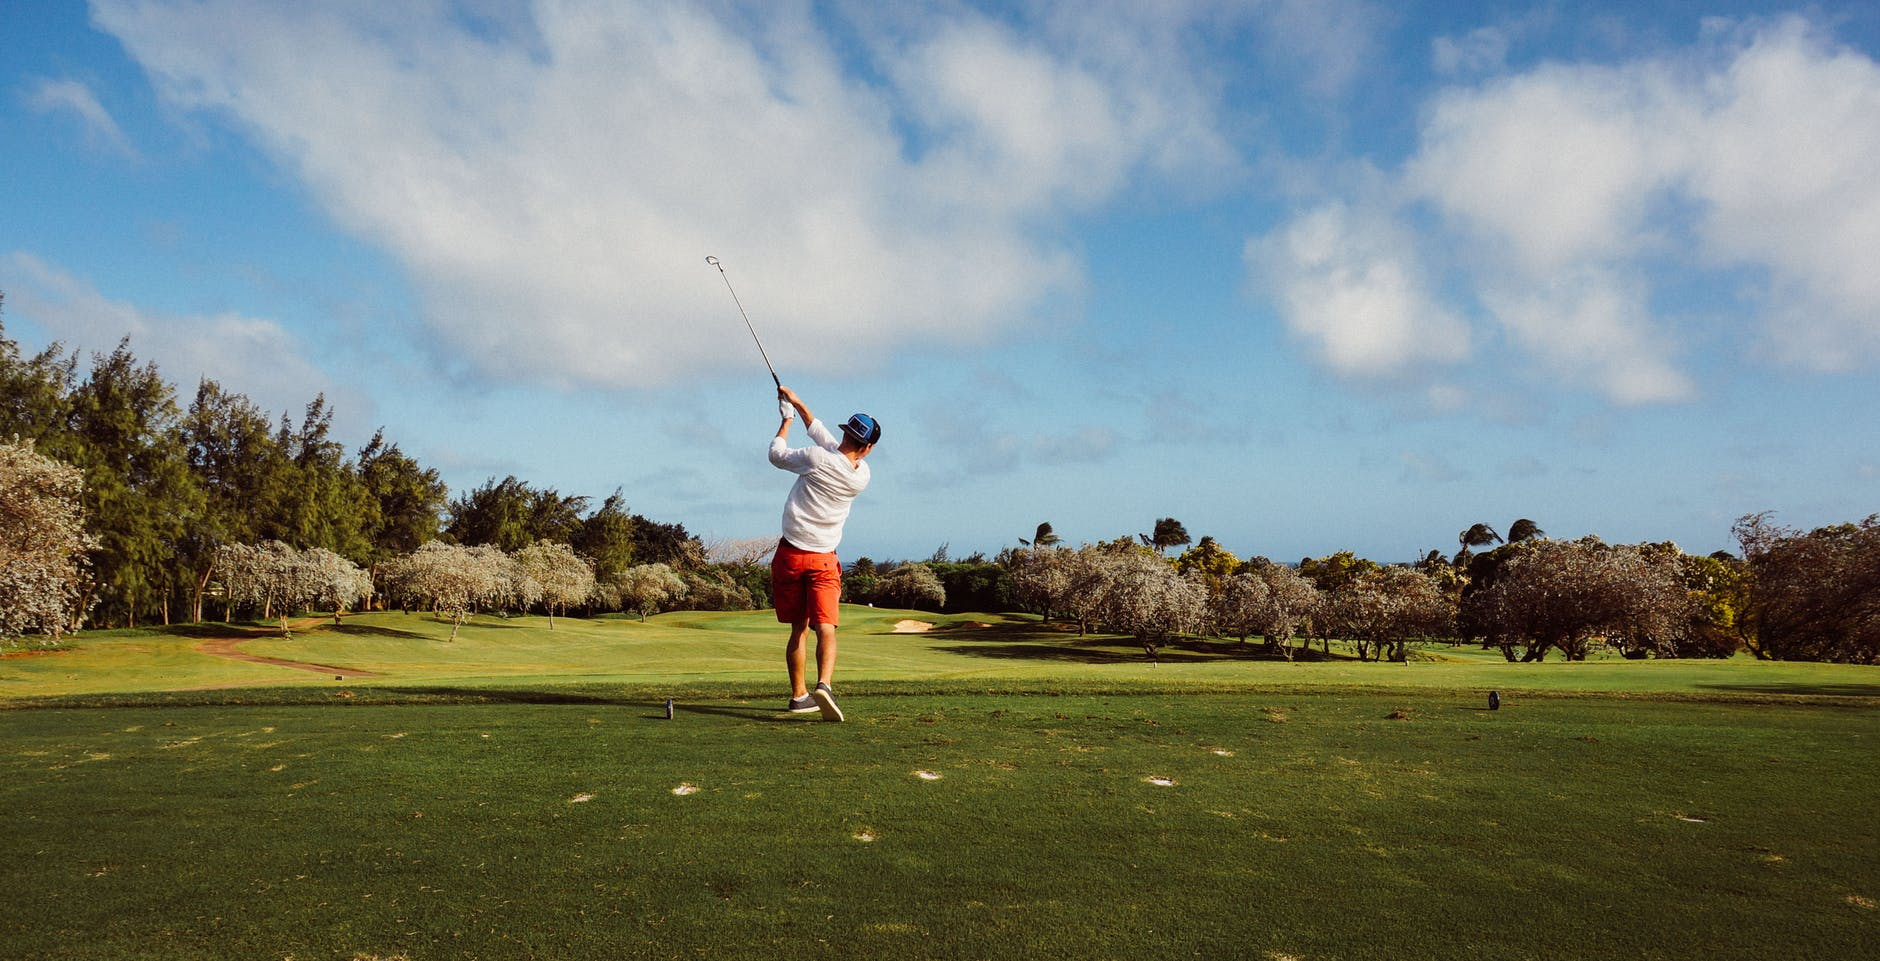 Getting Started On Golf: 9 Tips To Get Young Golfers Inspired